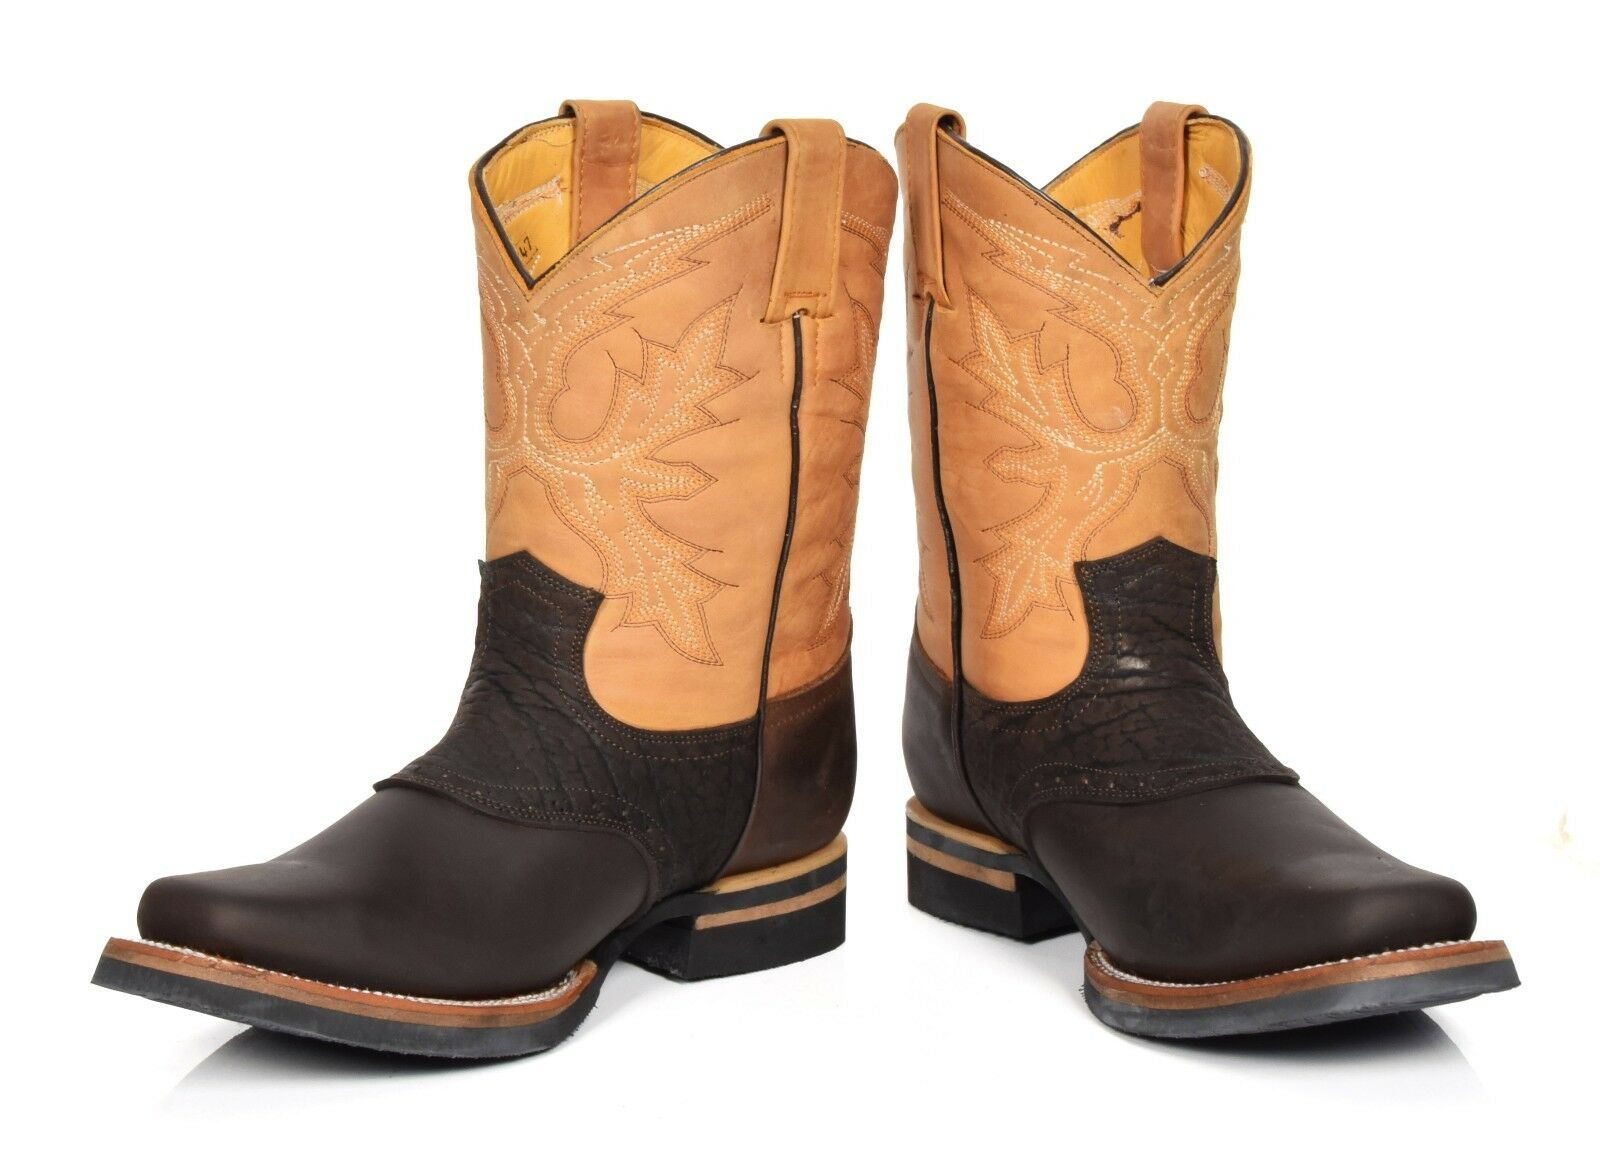 Cowboy Boots Brown Brown Brown Multi Leather Slip On Square Toe Western Style Grinders Boots 16c31e